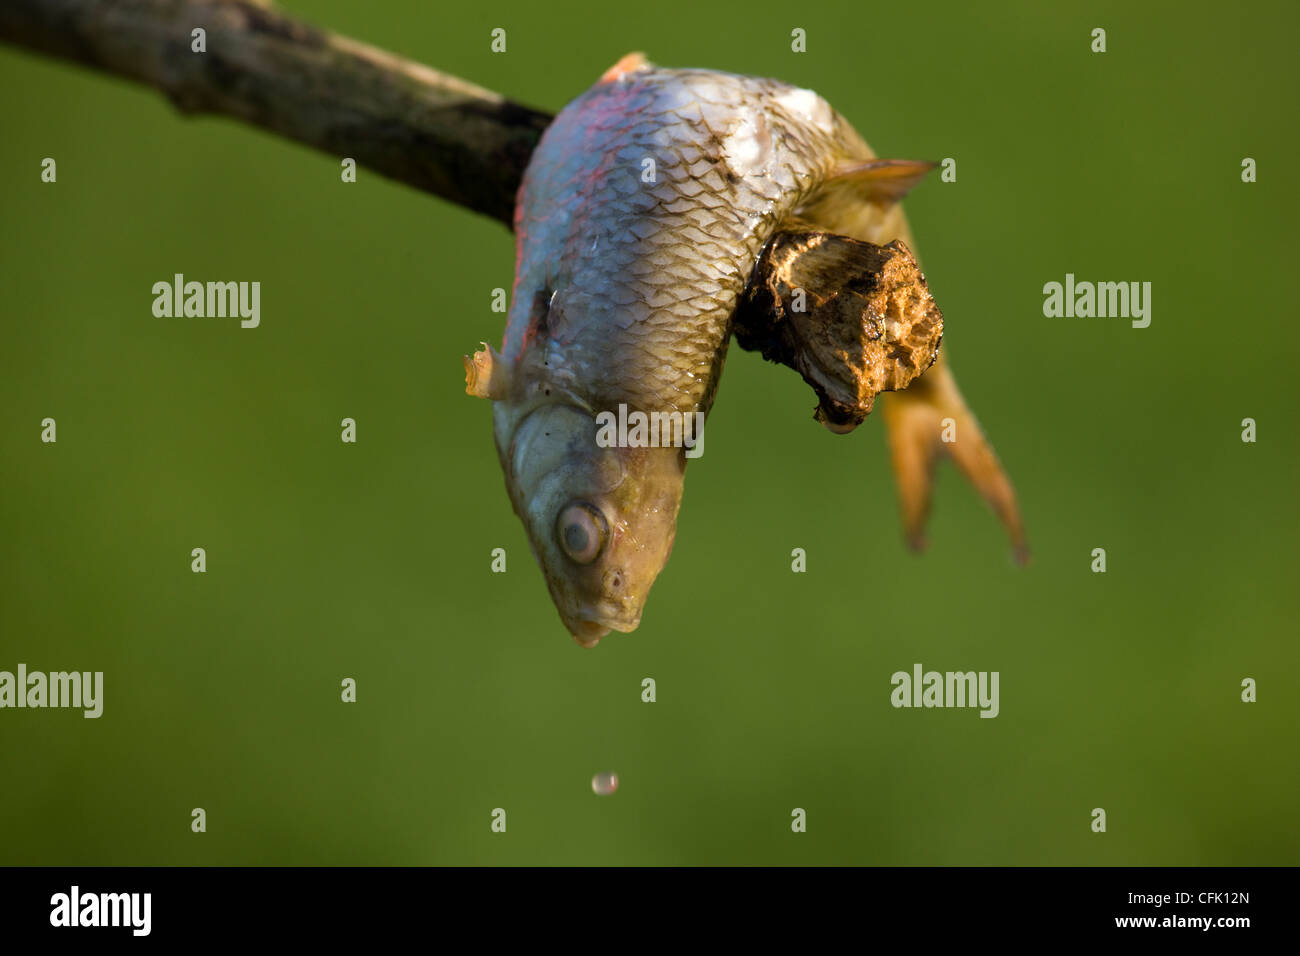 Dead fish, fished from a fishing lake, on the end of stick - Stock Image